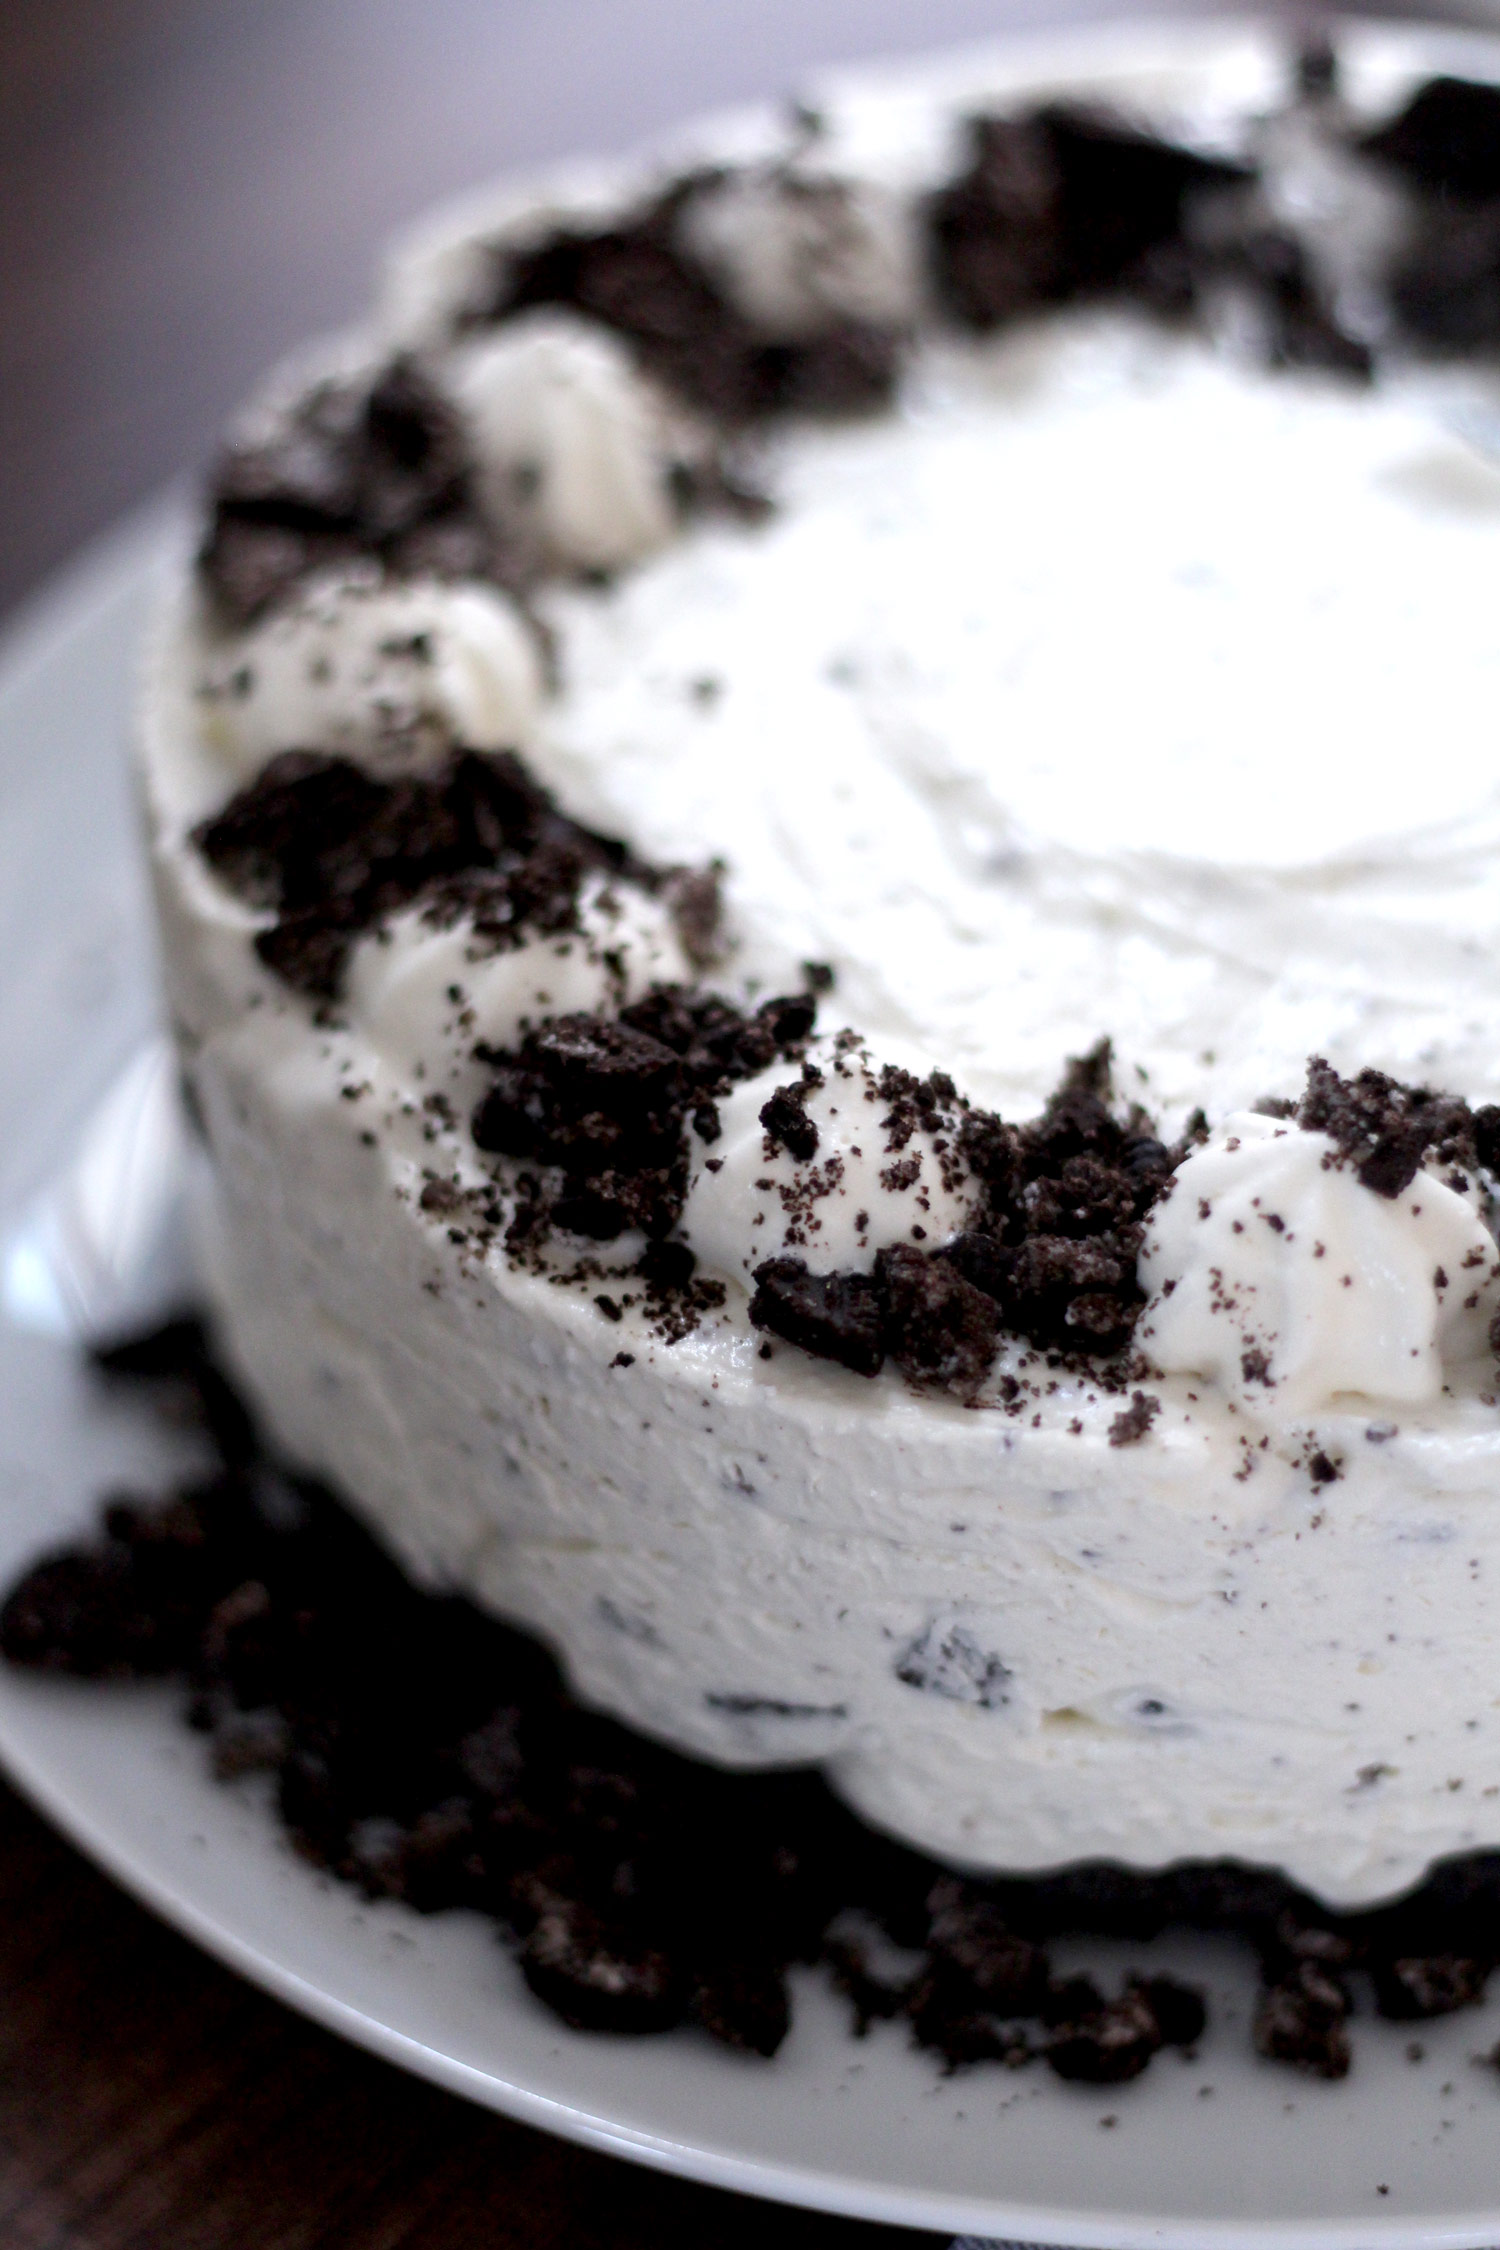 oreo-cheesecake-recipe-no-bake-easy-guide-5